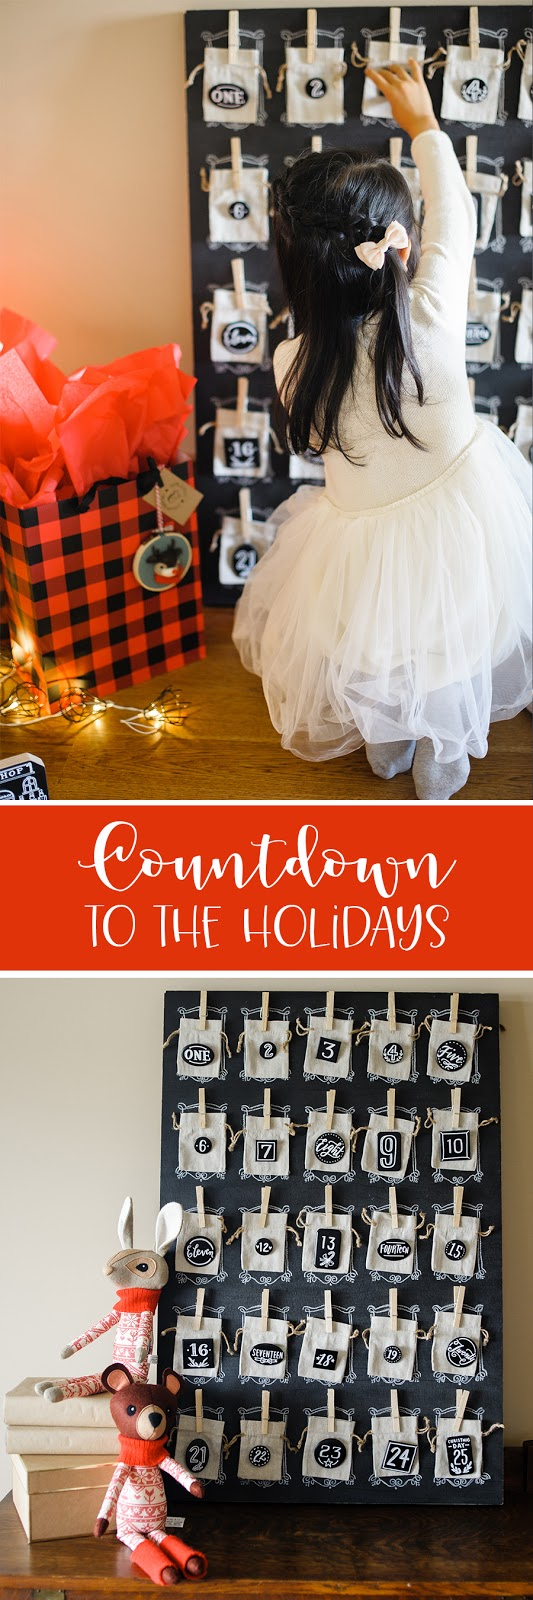 countdown to the holidays with hand lettered pin-back buttons on linen drawstring bags | creativebag.com